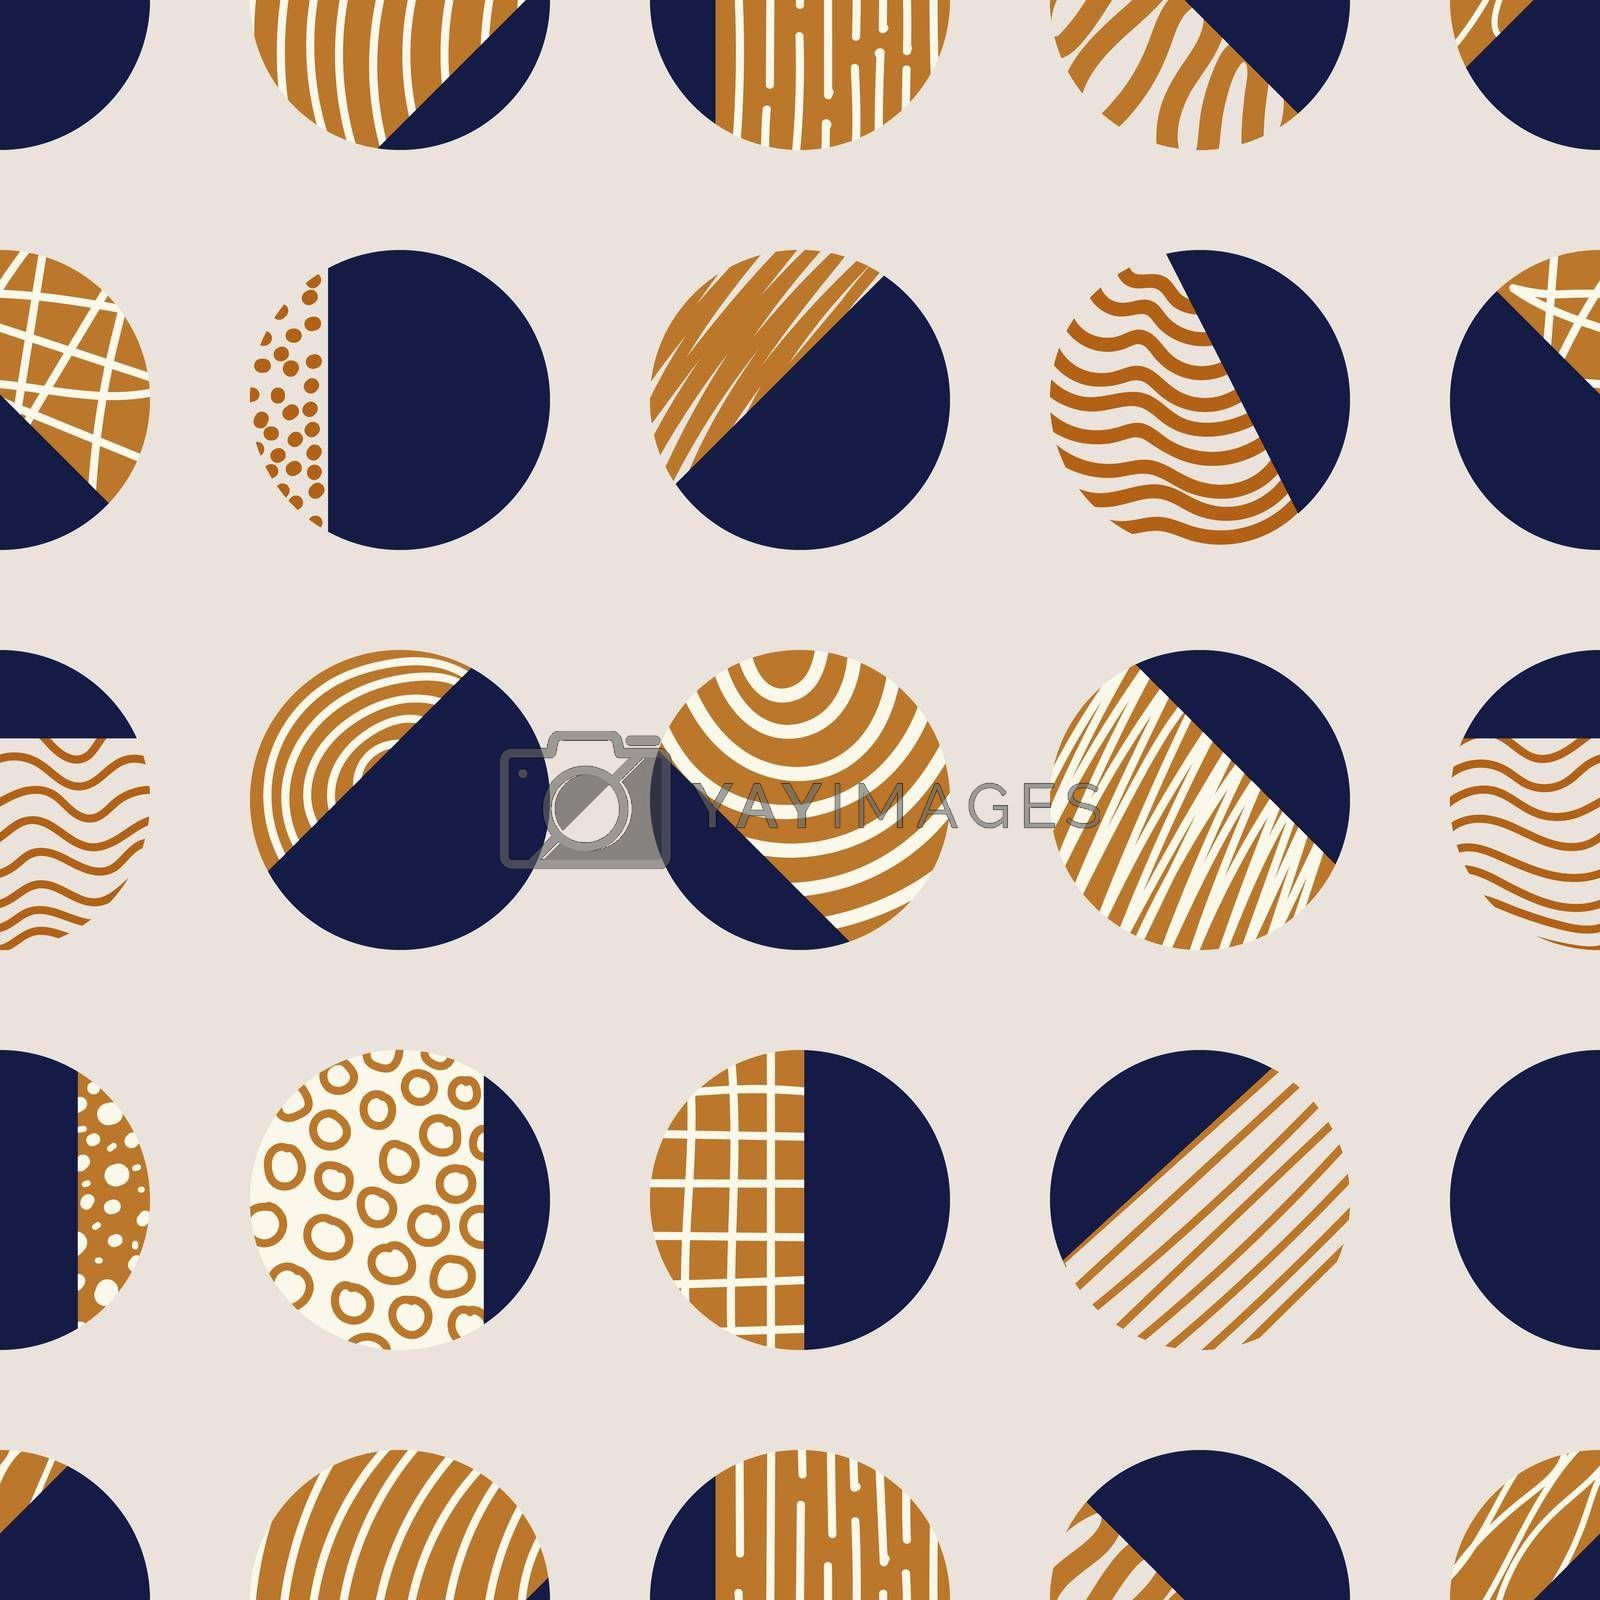 Royalty free image of Abstract elegant blue and brown circles seamless pattern with hand drawn striped line texture isolated on white background by phochi